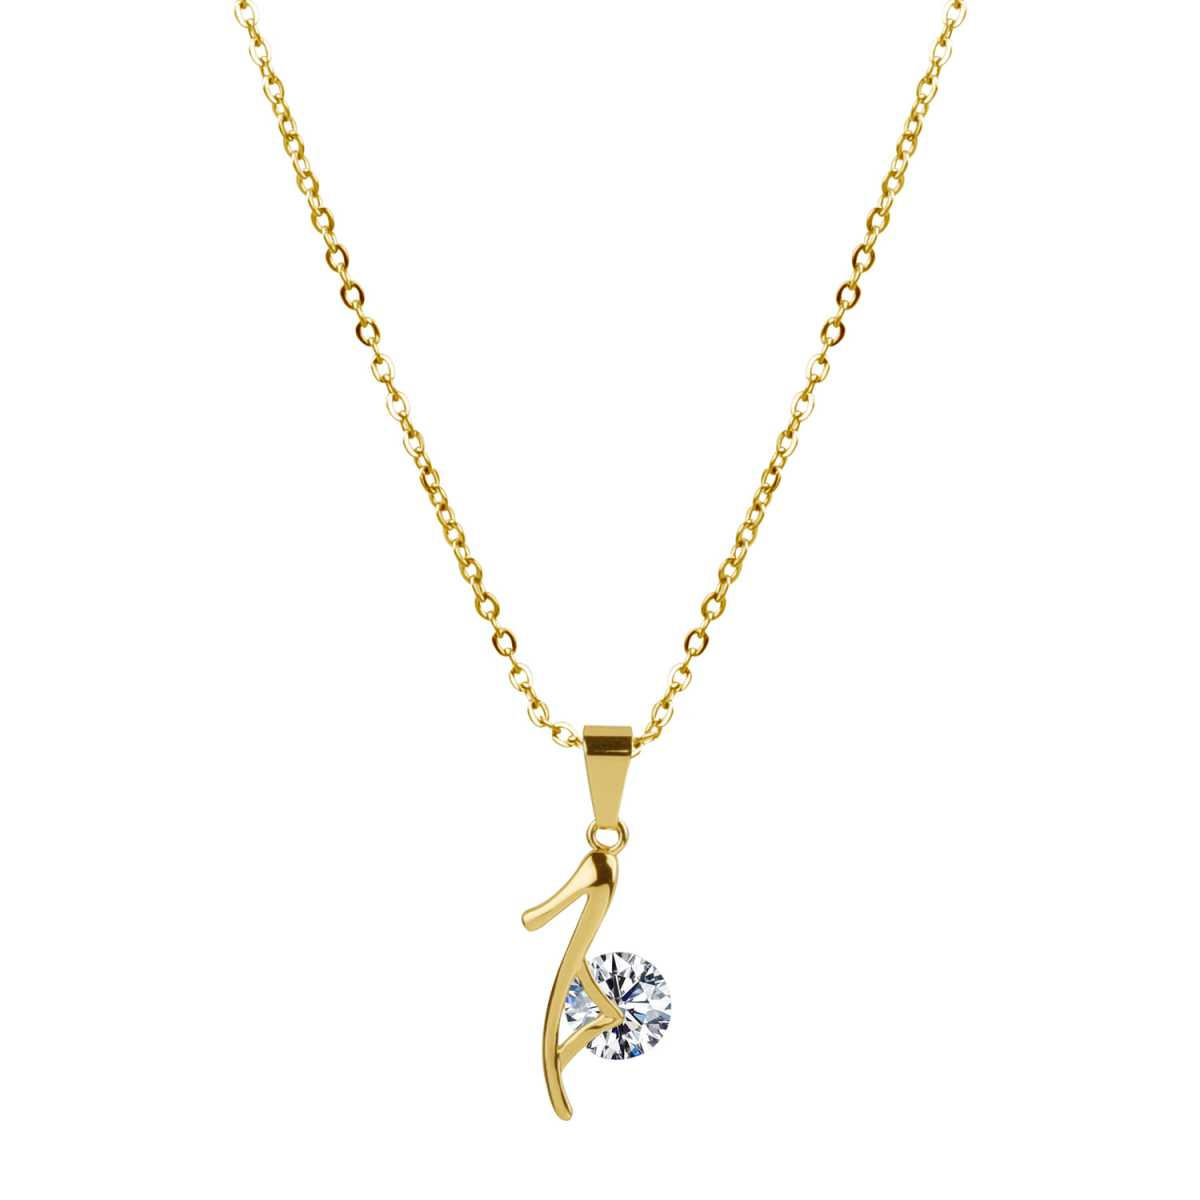 Ravishing Gold 18 Inch Cable Chain With Diamond Pendent Chain Decent look Gift For Love Once Girls And Women